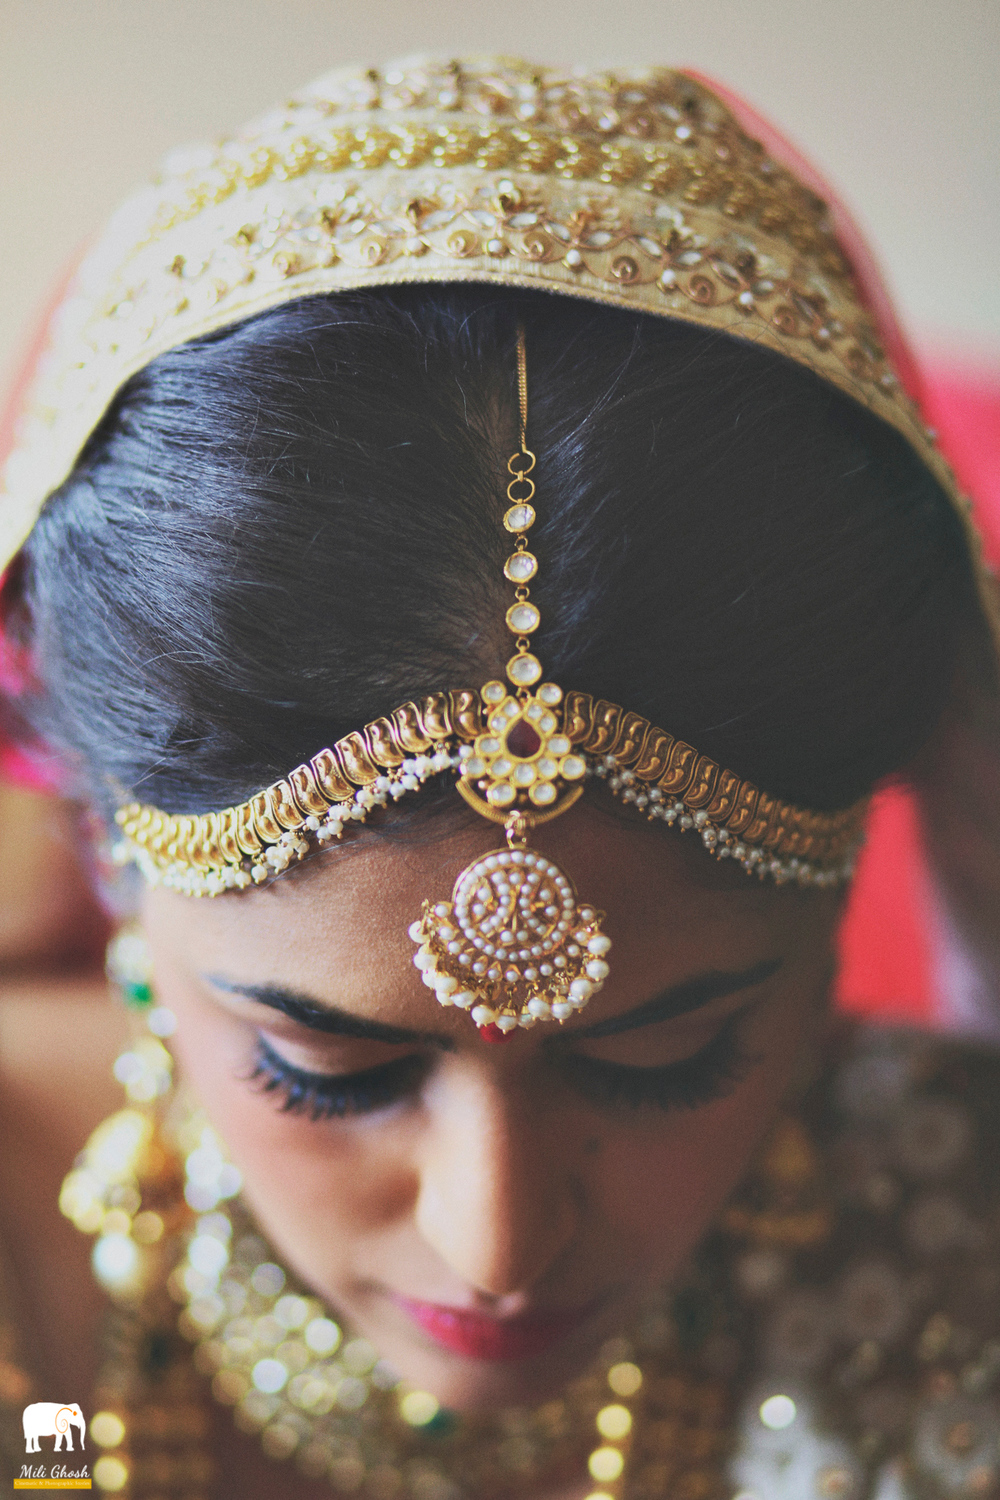 Copy of BEAUTIFUL INDIAN BRIDE HEAD PIECE